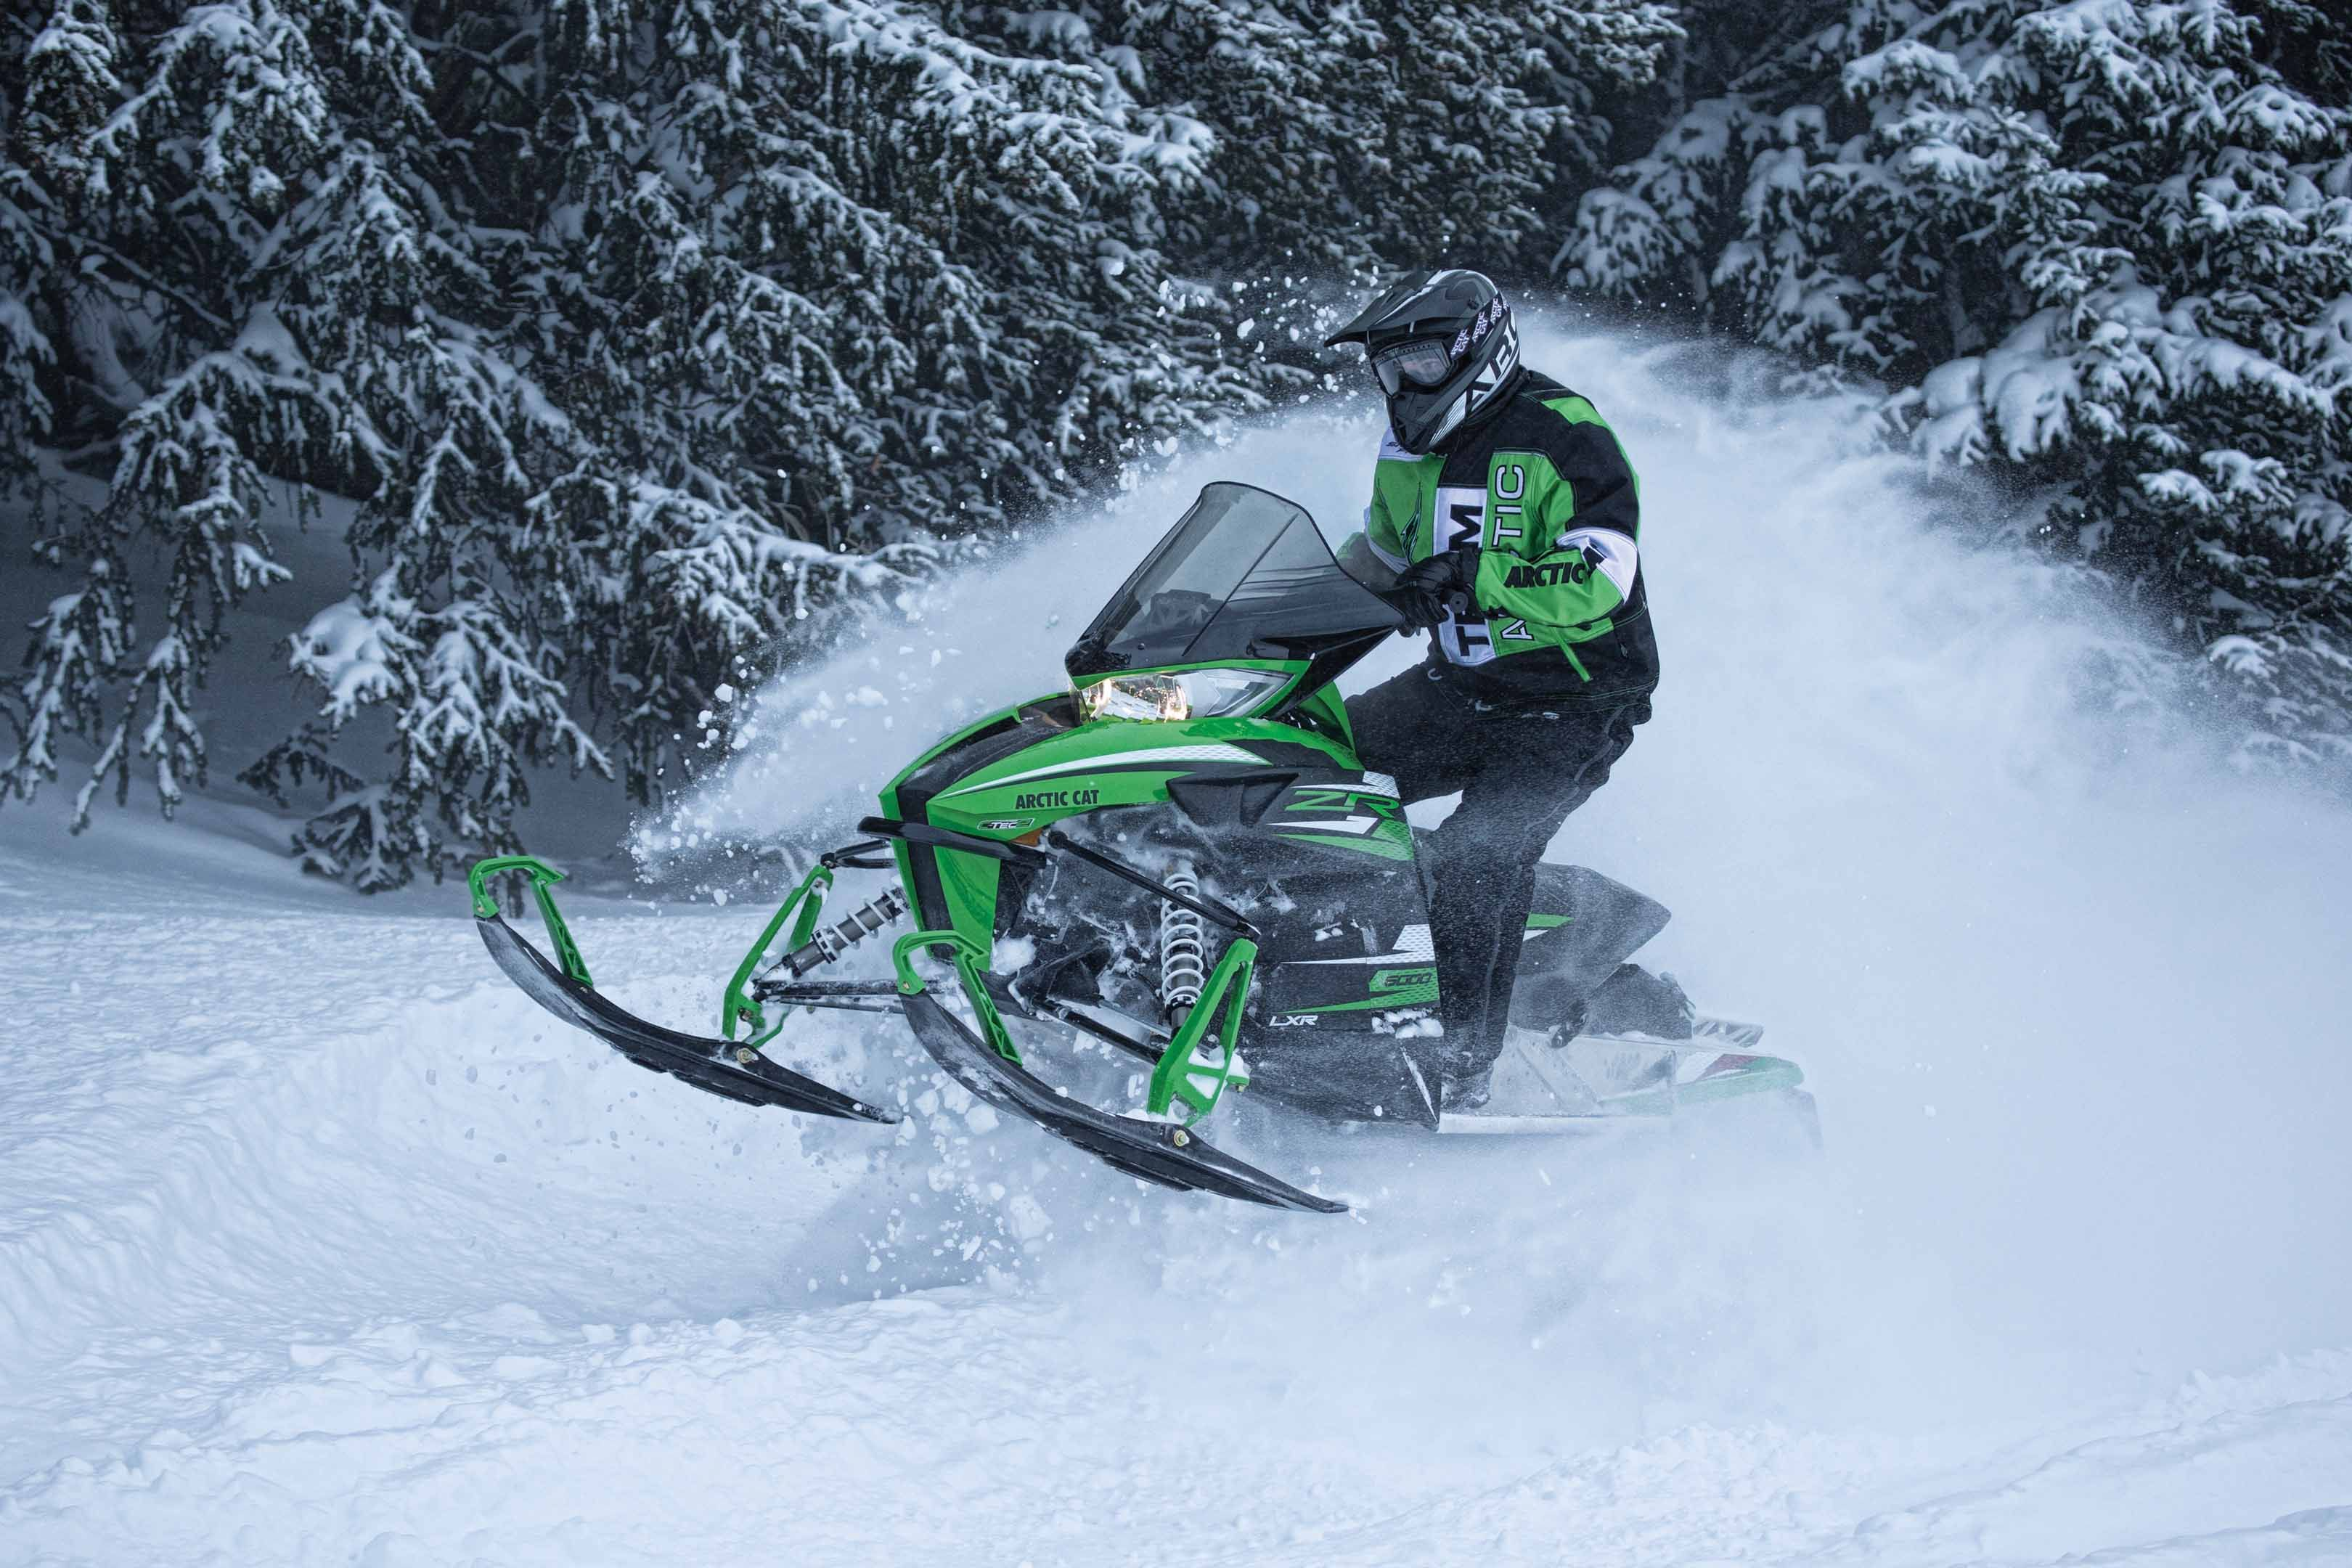 Arctic Cat Snowmobiles (With images) Snowmobile, Arctic